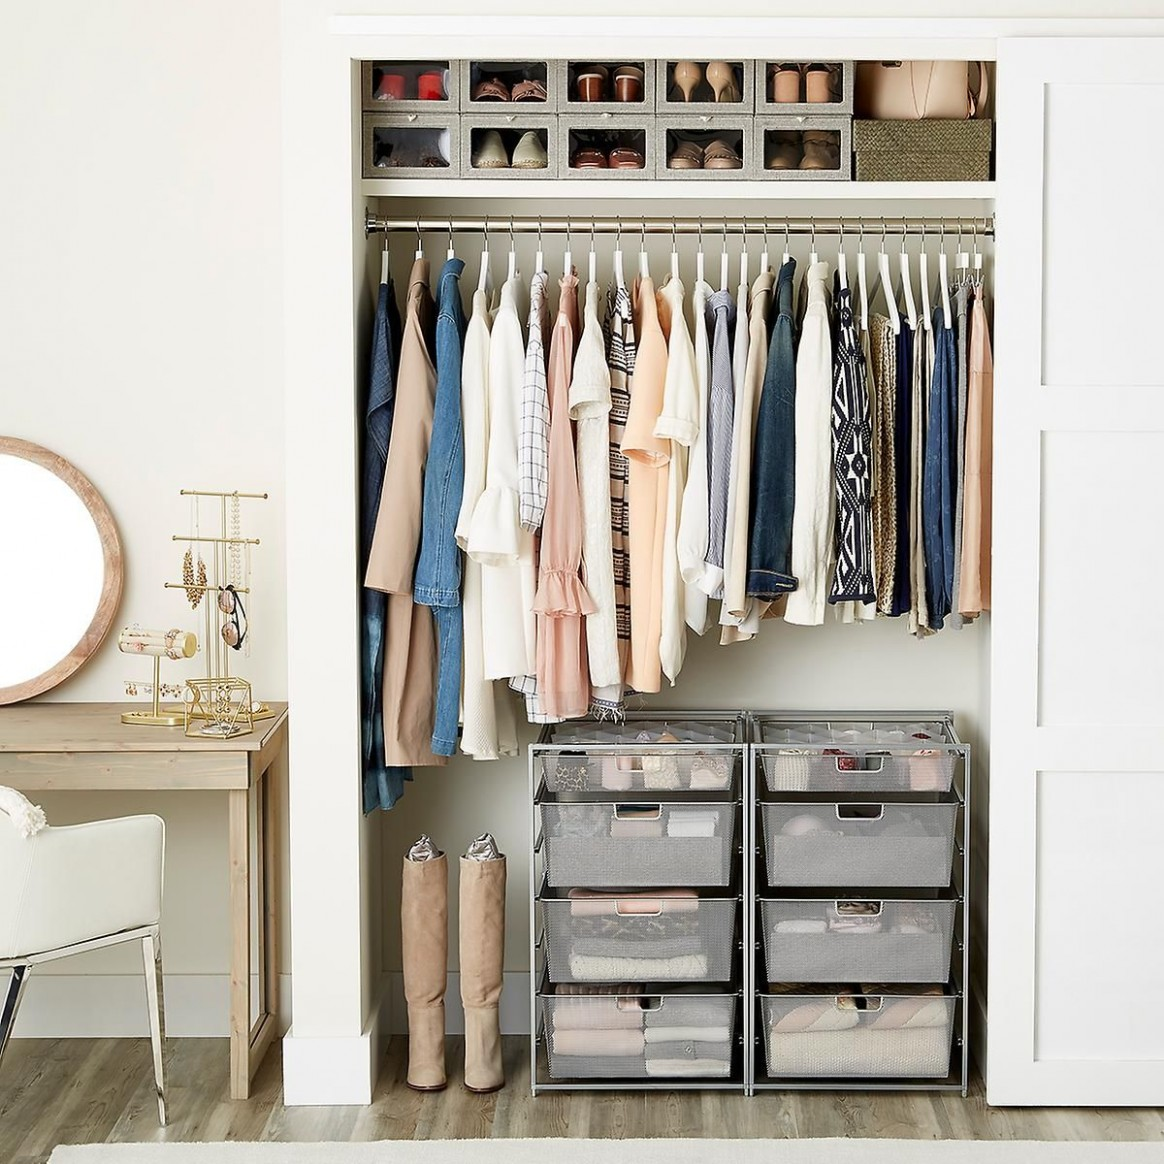 10 Small Apartment Closet Ideas that Save Space with Innovative Design - Closet Ideas In Apartment